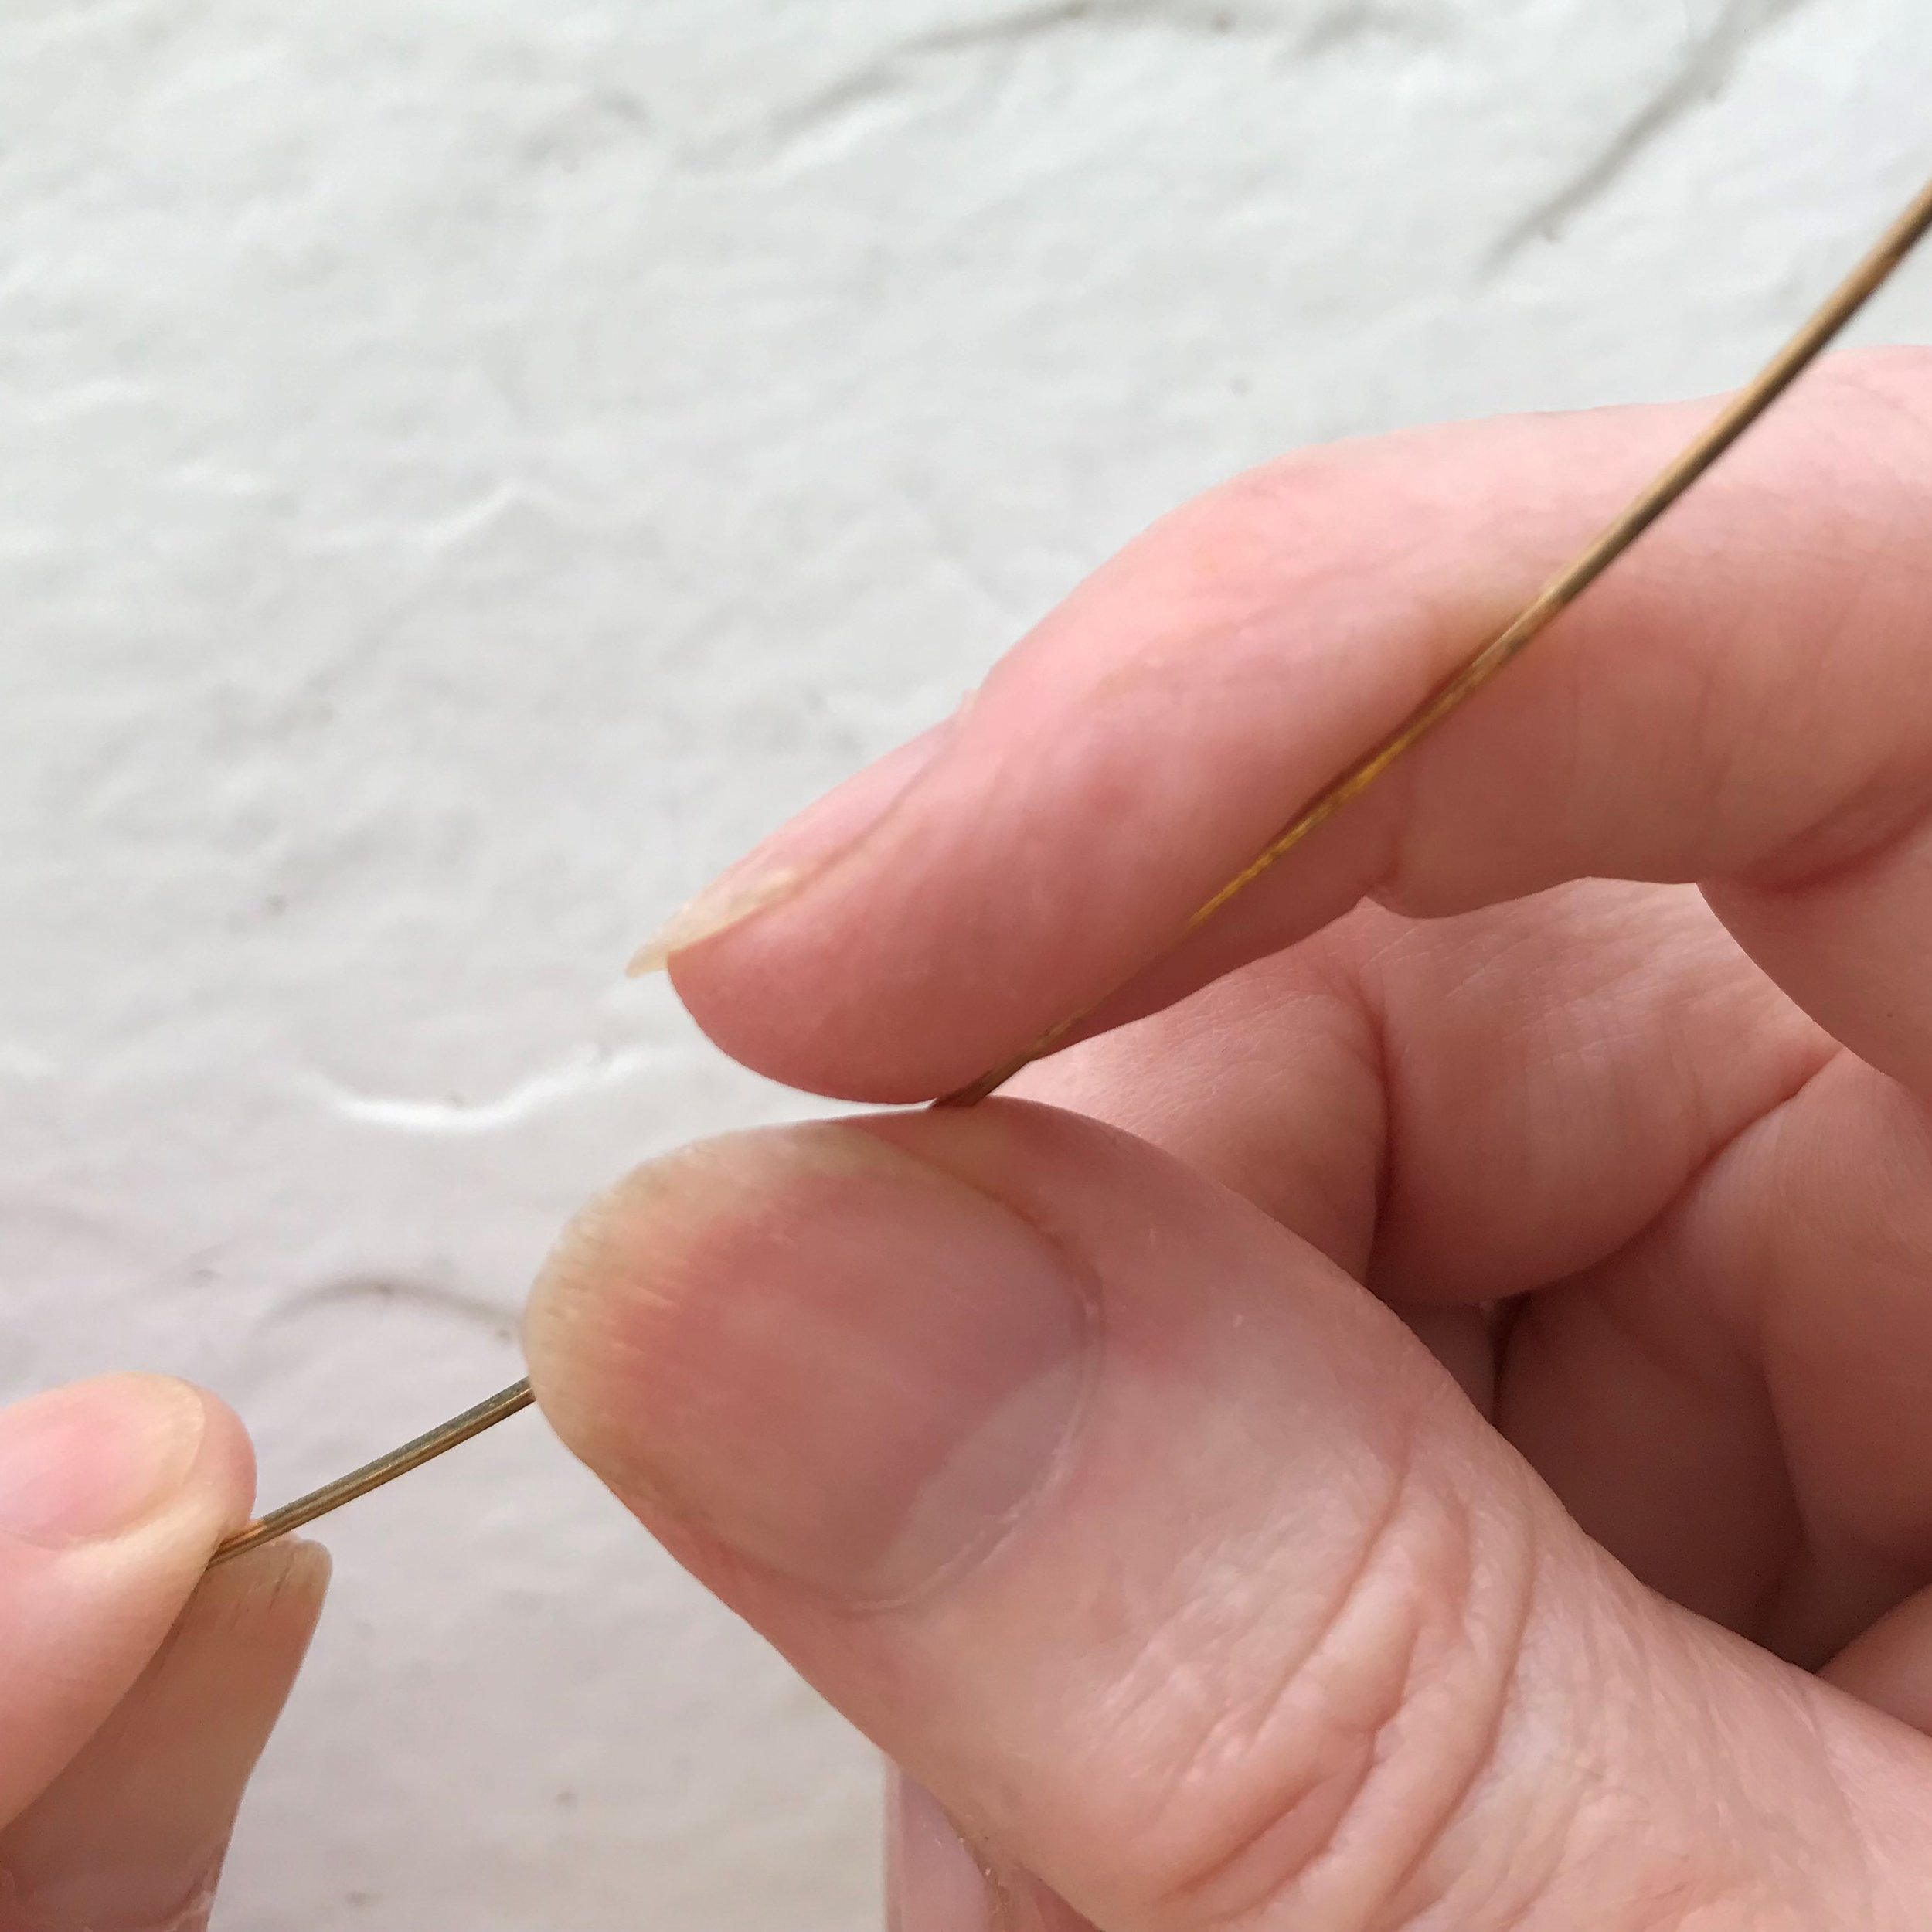 Straighten - Each Square Wire in the bundle must be straight